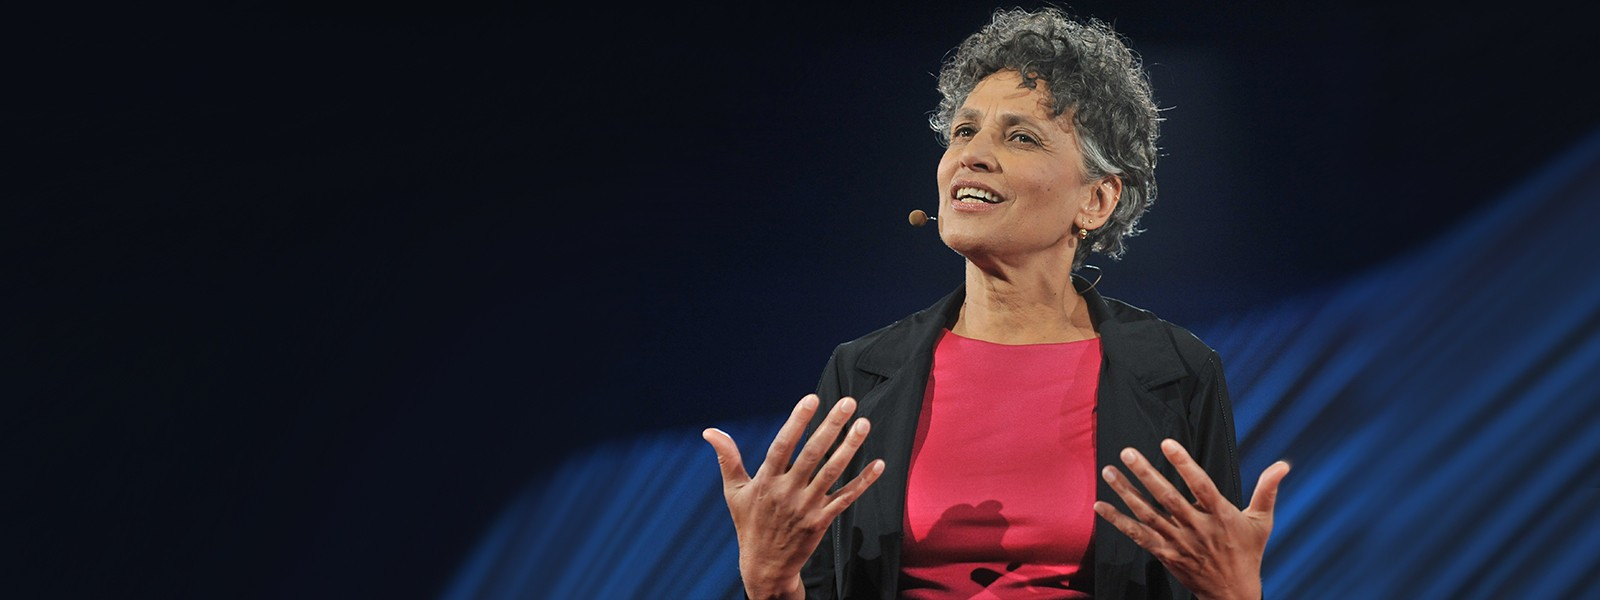 TEDMED - Talk Details - Why your doctor should care about social justice